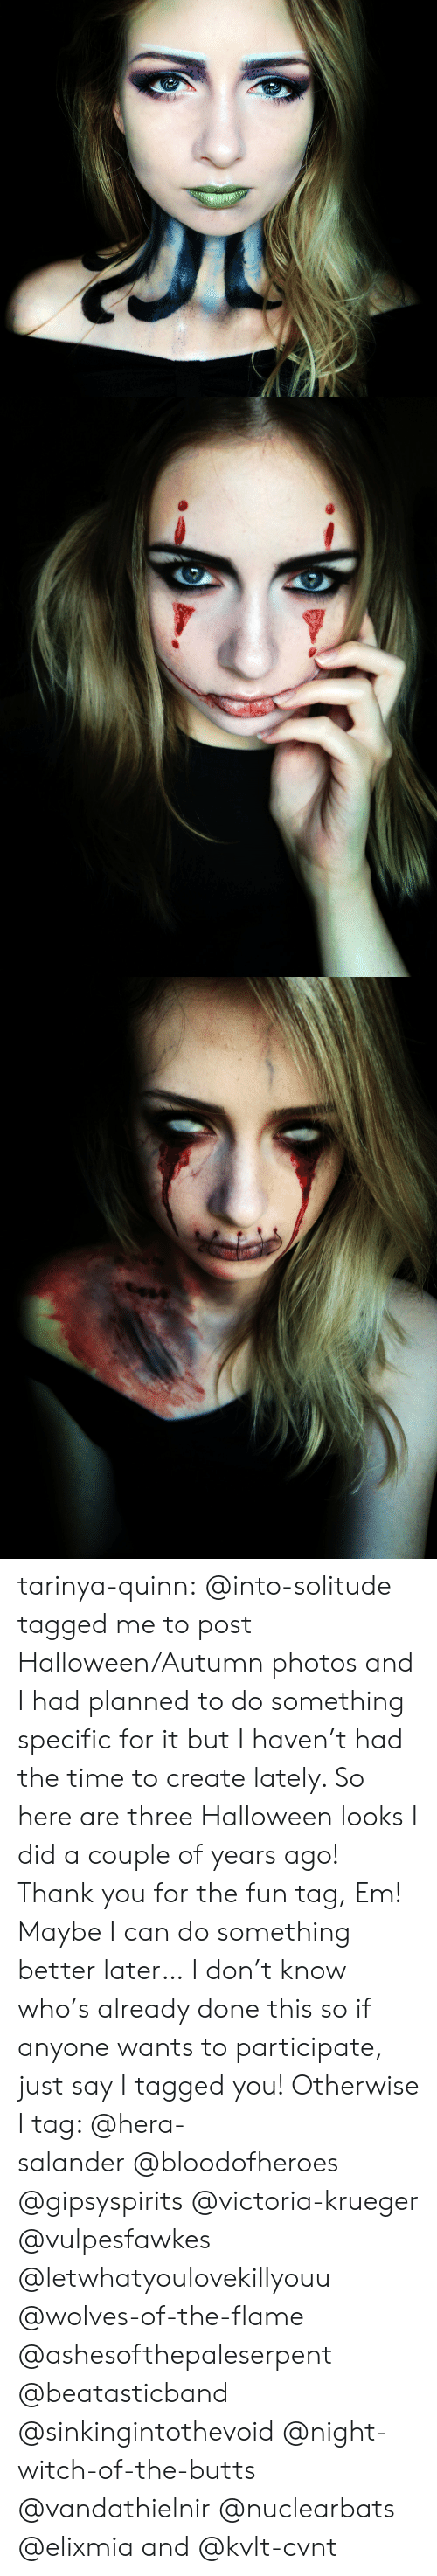 Kvlt: tarinya-quinn:  @into-solitude tagged me to post Halloween/Autumn photos and I had planned to do something specific for it but I haven't had the time to create lately. So here are three Halloween looks I did a couple of years ago! Thank you for the fun tag, Em! Maybe I can do something better later…I don't know who's already done this so if anyone wants to participate, just say I tagged you! Otherwise I tag: @hera-salander@bloodofheroes @gipsyspirits @victoria-krueger @vulpesfawkes @letwhatyoulovekillyouu @wolves-of-the-flame @ashesofthepaleserpent @beatasticband @sinkingintothevoid @night-witch-of-the-butts @vandathielnir @nuclearbats @elixmia and @kvlt-cvnt